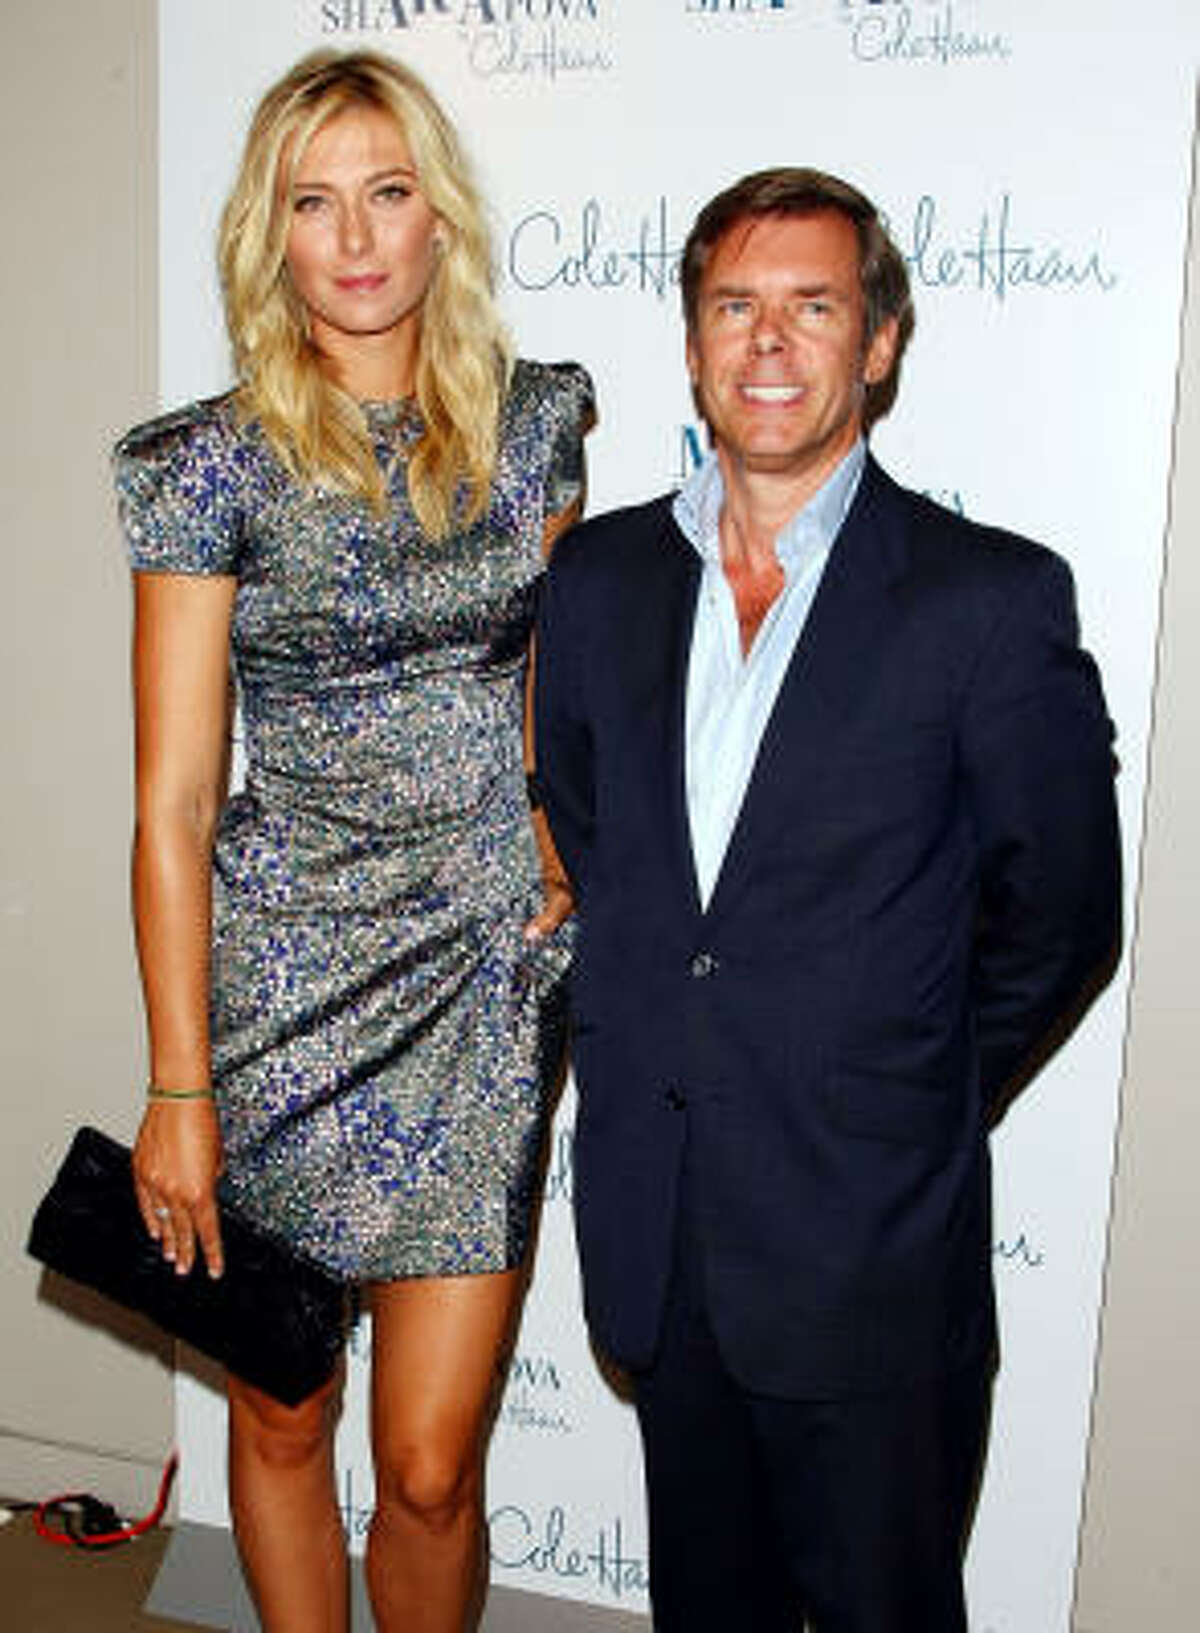 Tennis star Maria Sharapova and Cole Haan CEO Jim Seuss attend the unveiling of her collection.